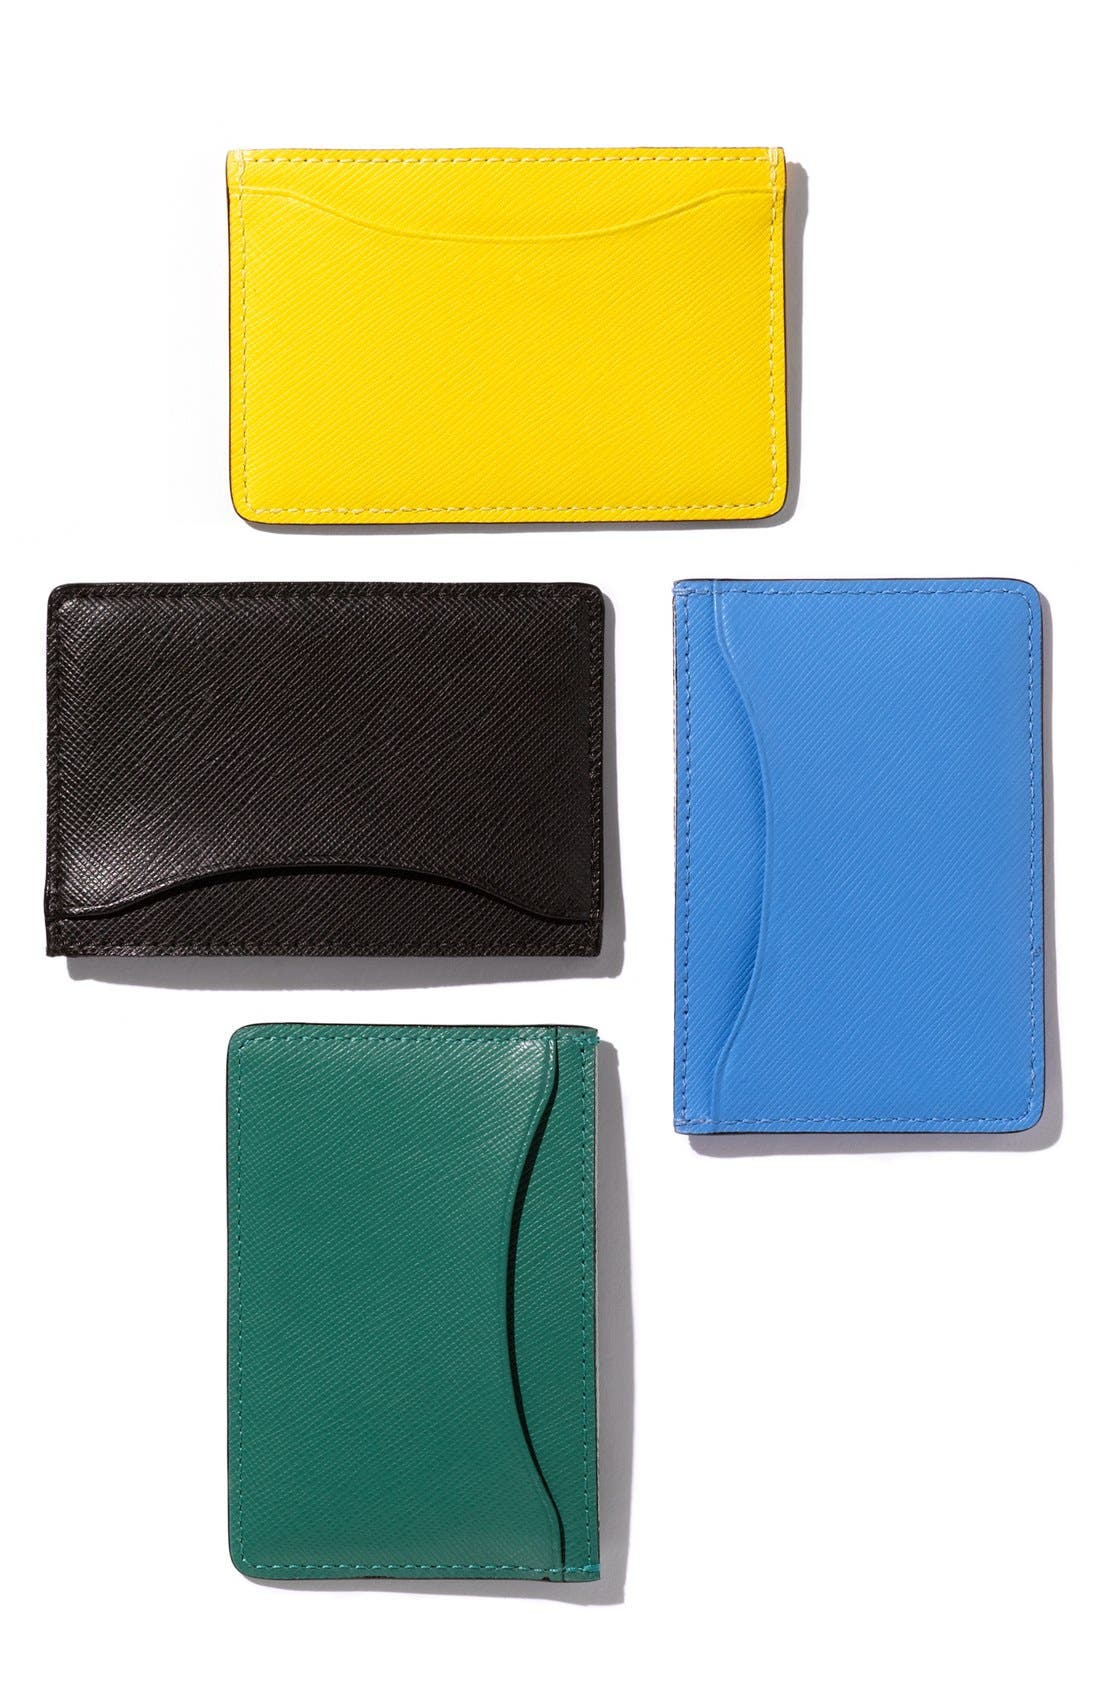 Alternate Image 2  - Jack Spade Crosshatched Leather Card Holder